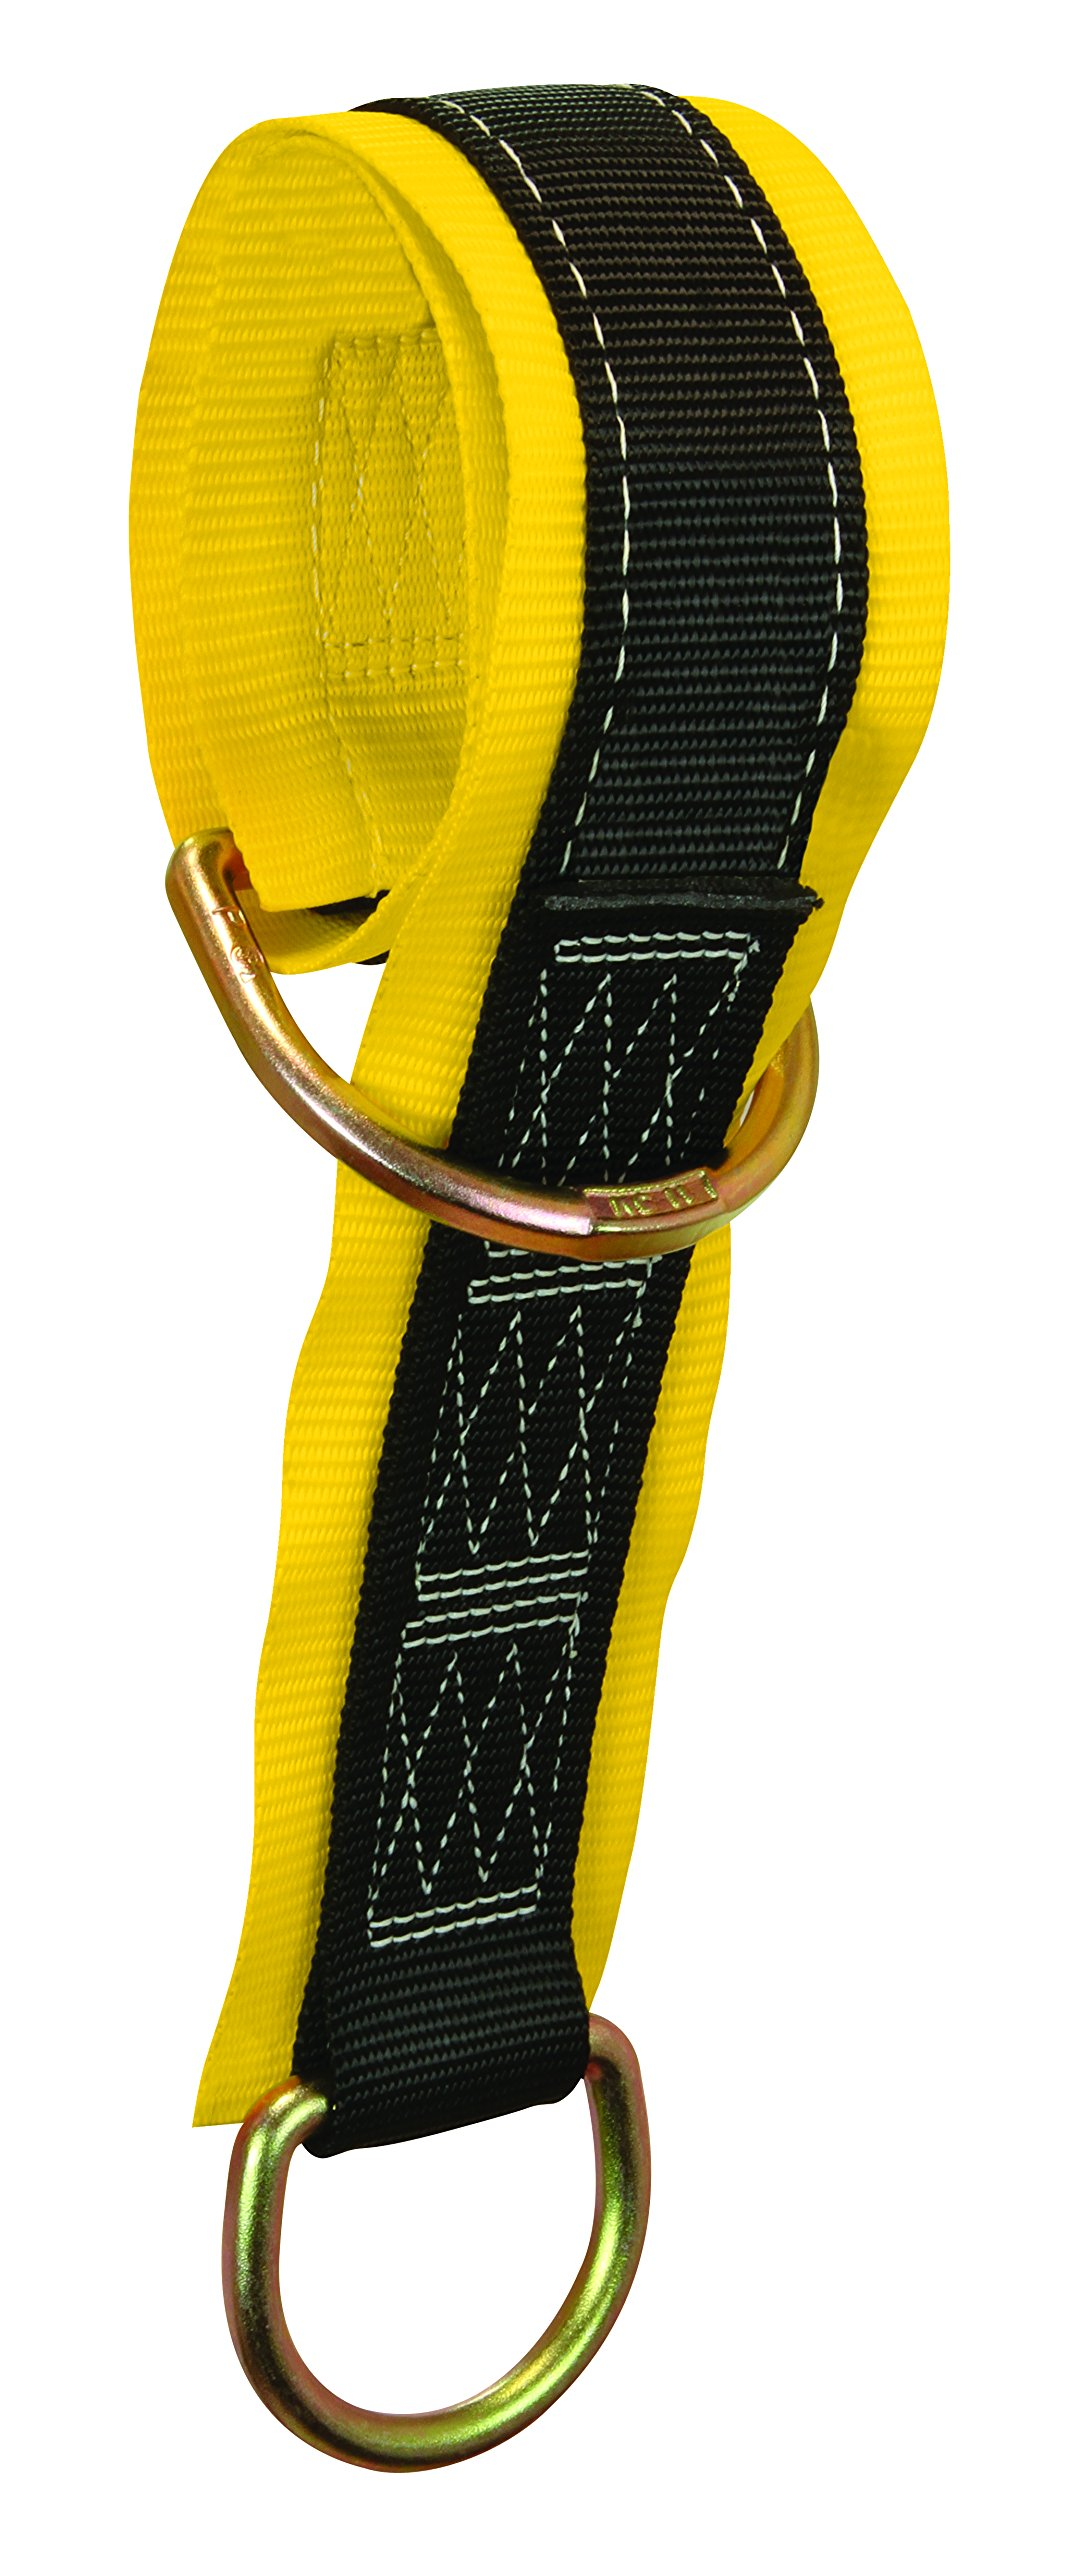 FallTech 737210 10-Foot Pass-Thru Web Anchor Sling by FallTech